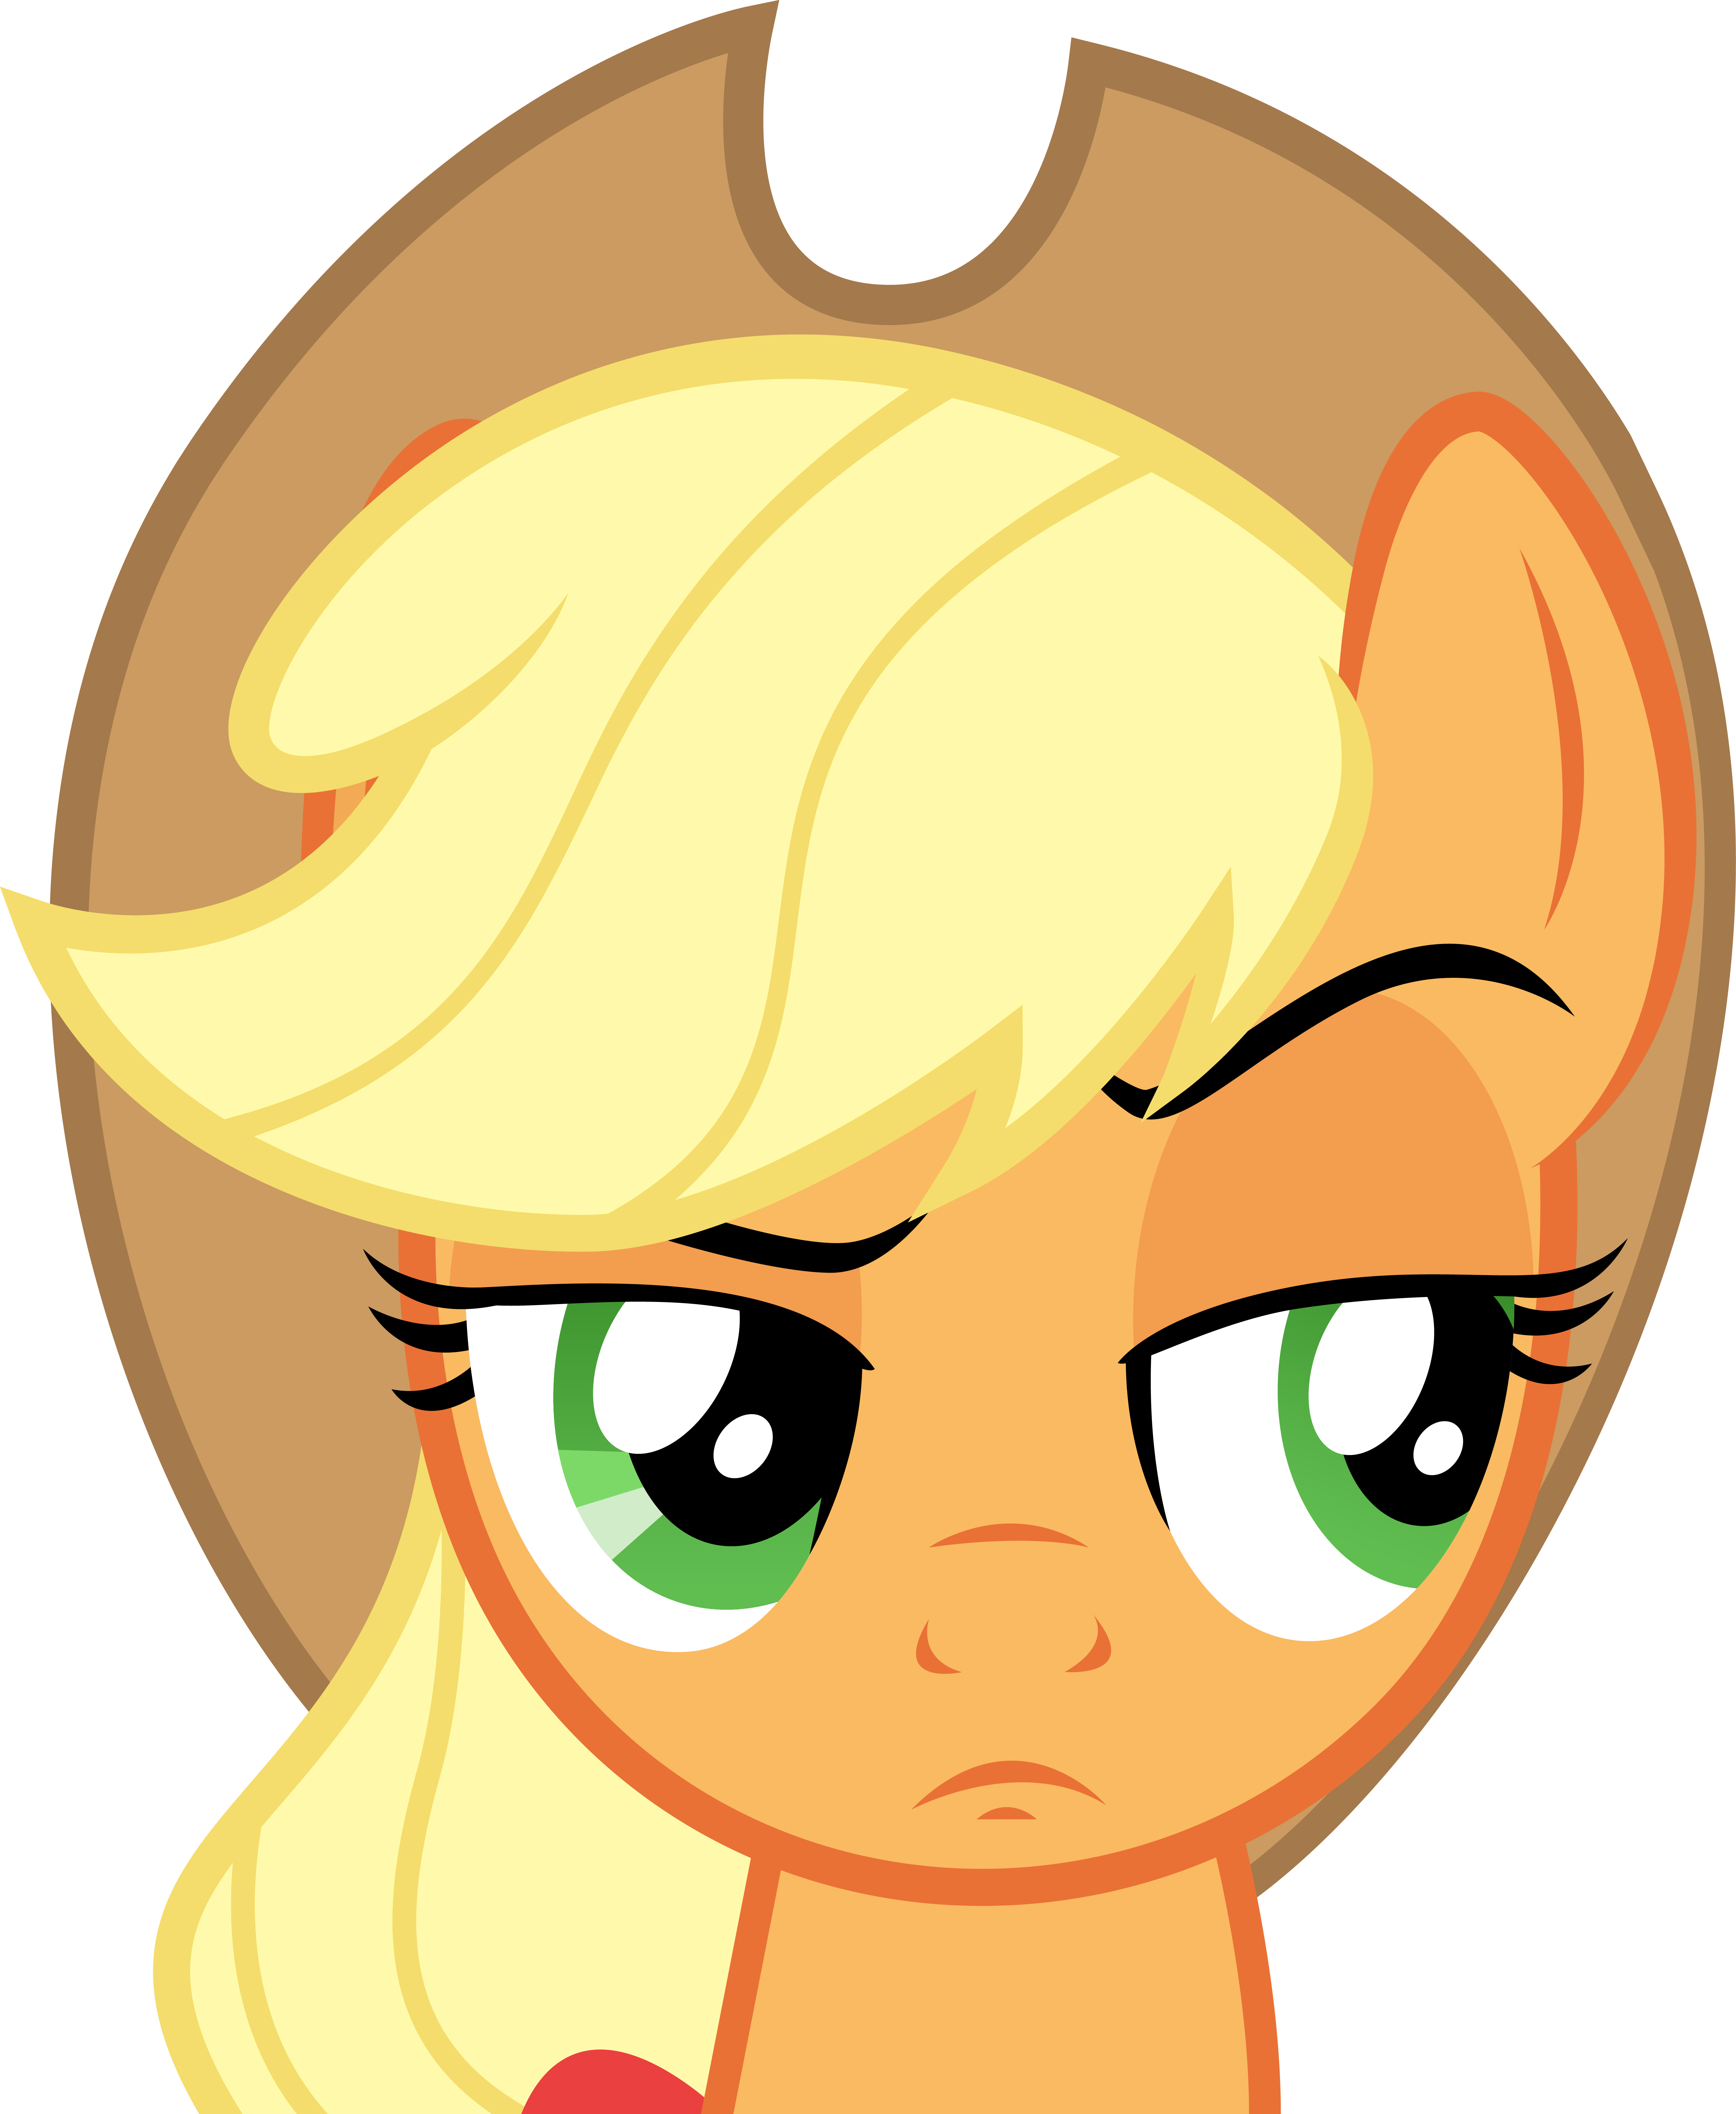 Surprised clipart eyebrow. Fascinating tv tropes applejack